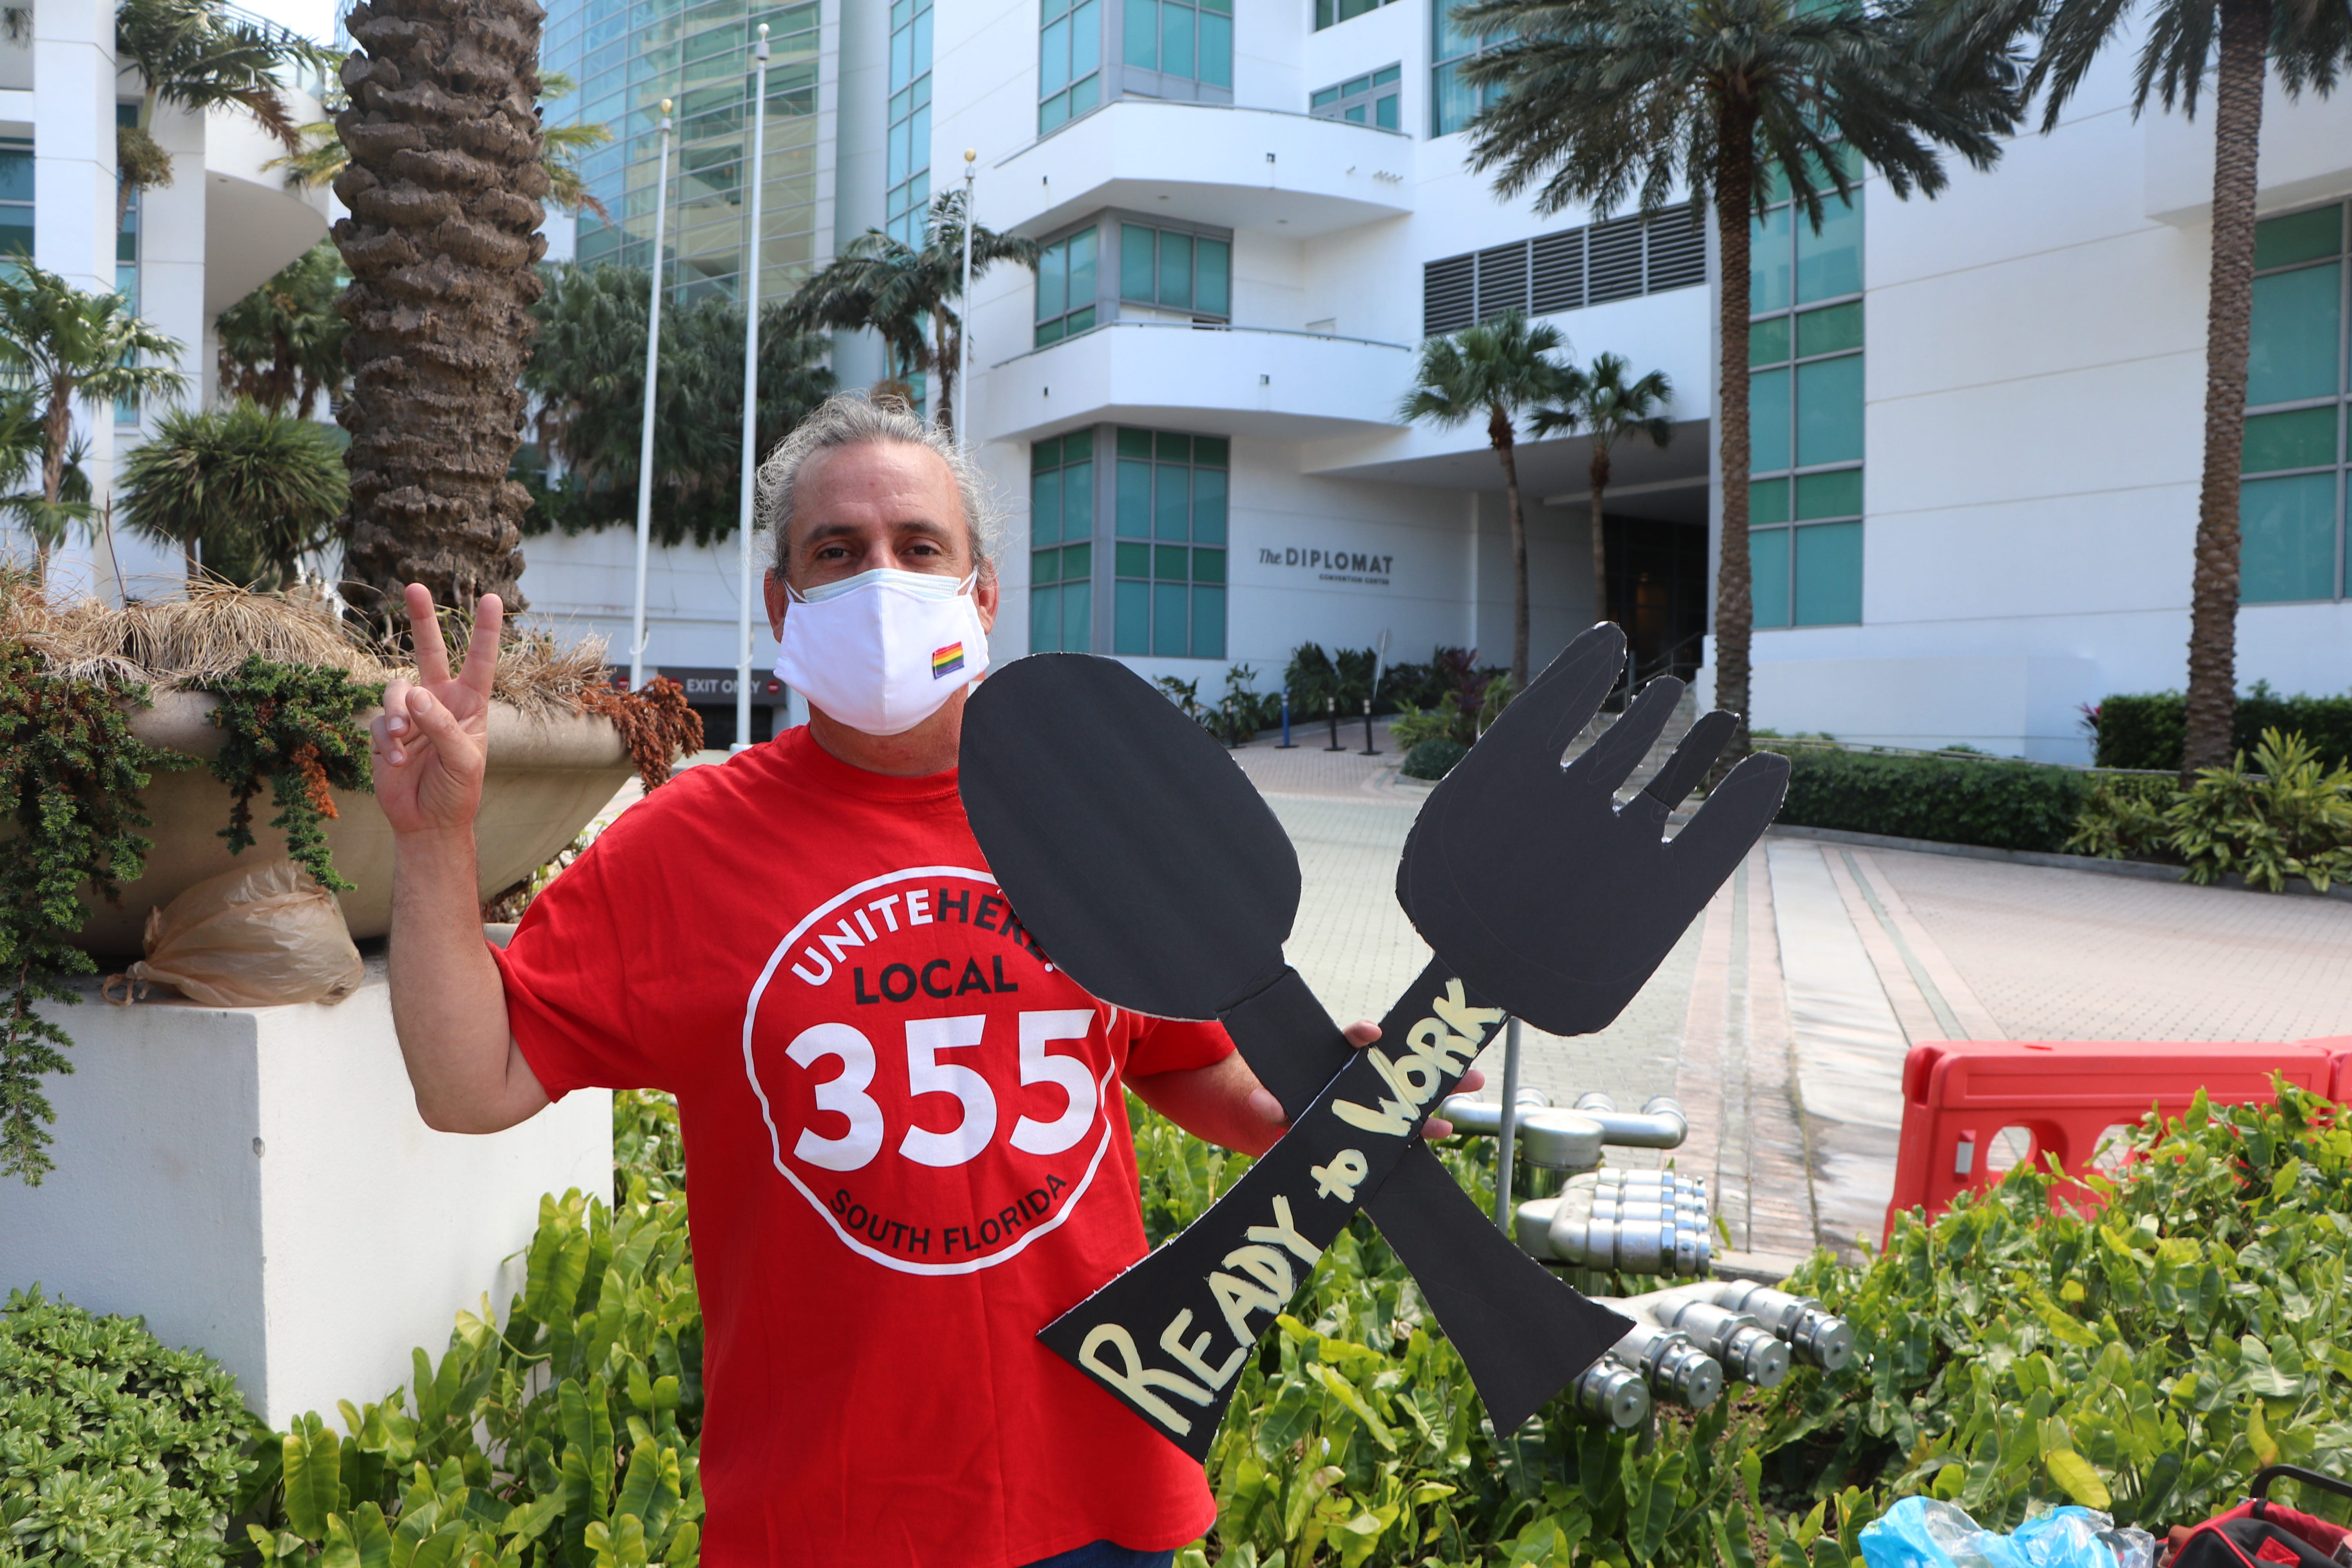 Florida's hospitality industry: Employers need workers. Workers need jobs. What's the problem?